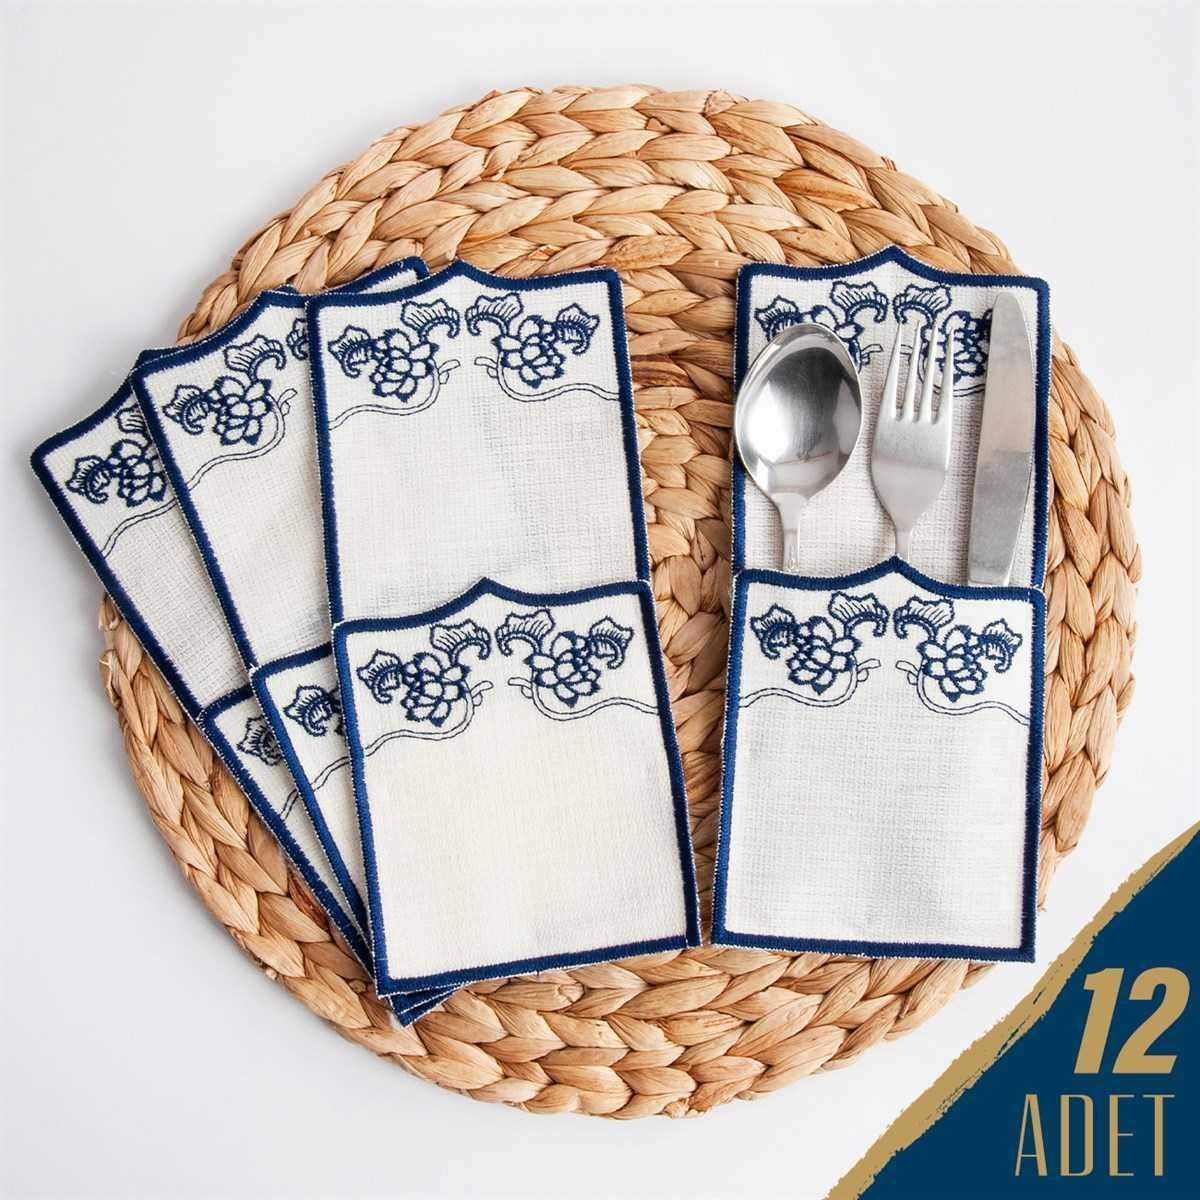 Linen Cotton Set of 12 special handmade table spoon serving accessories Dinner Napkin Party Decoration tablecloth High end